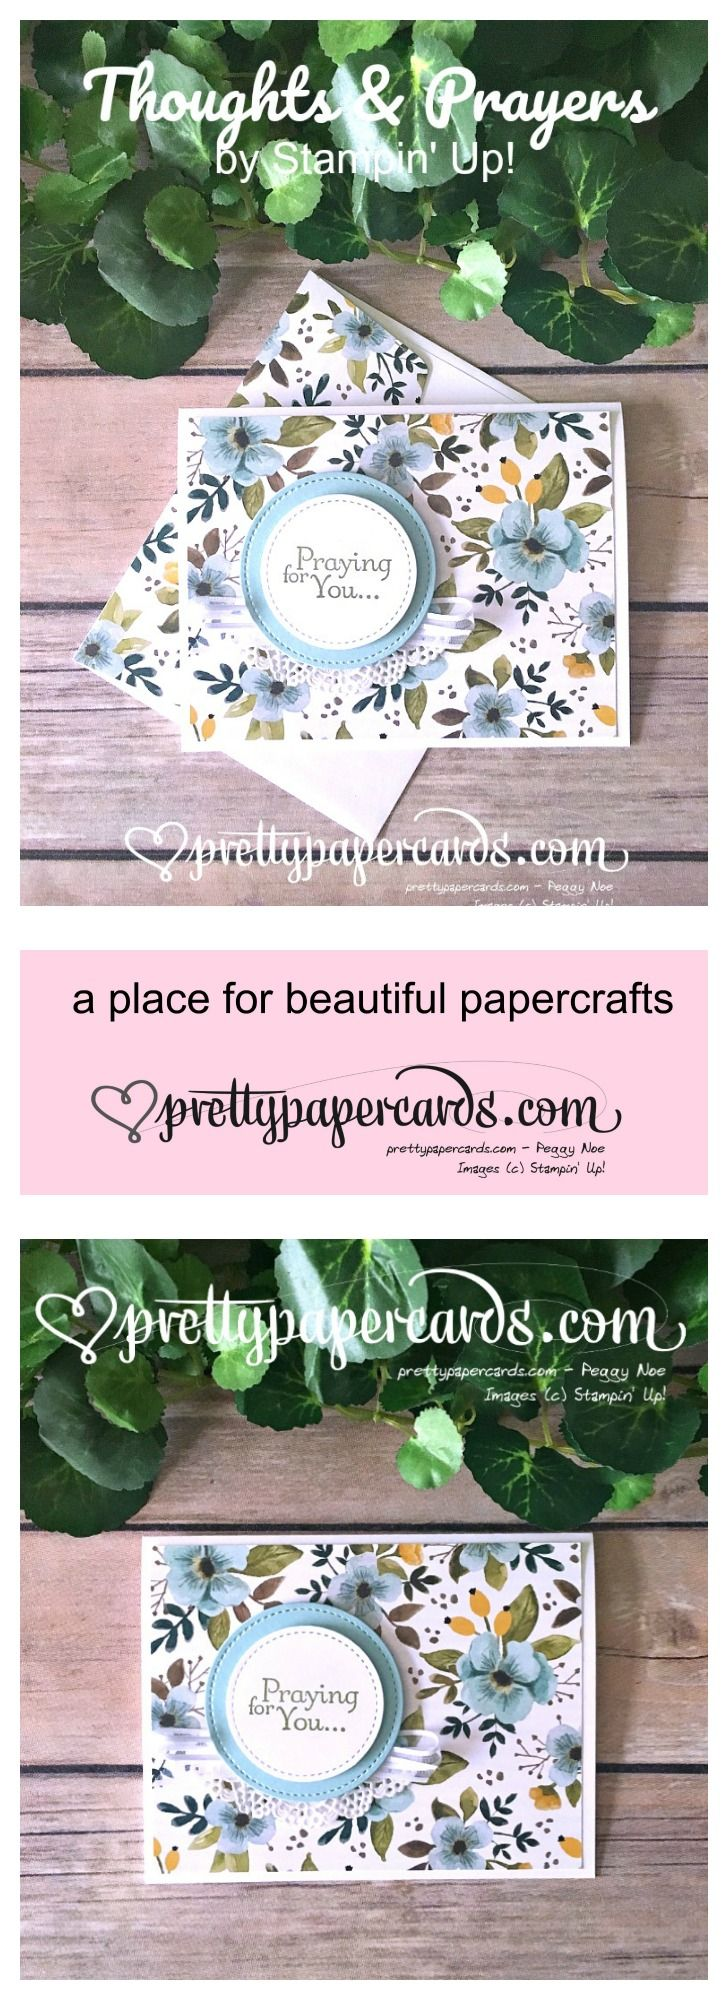 Stampin' Up! Thoughts & Prayers stamp set makes a pretty Praying for You card! See more at prettypapercards.com!